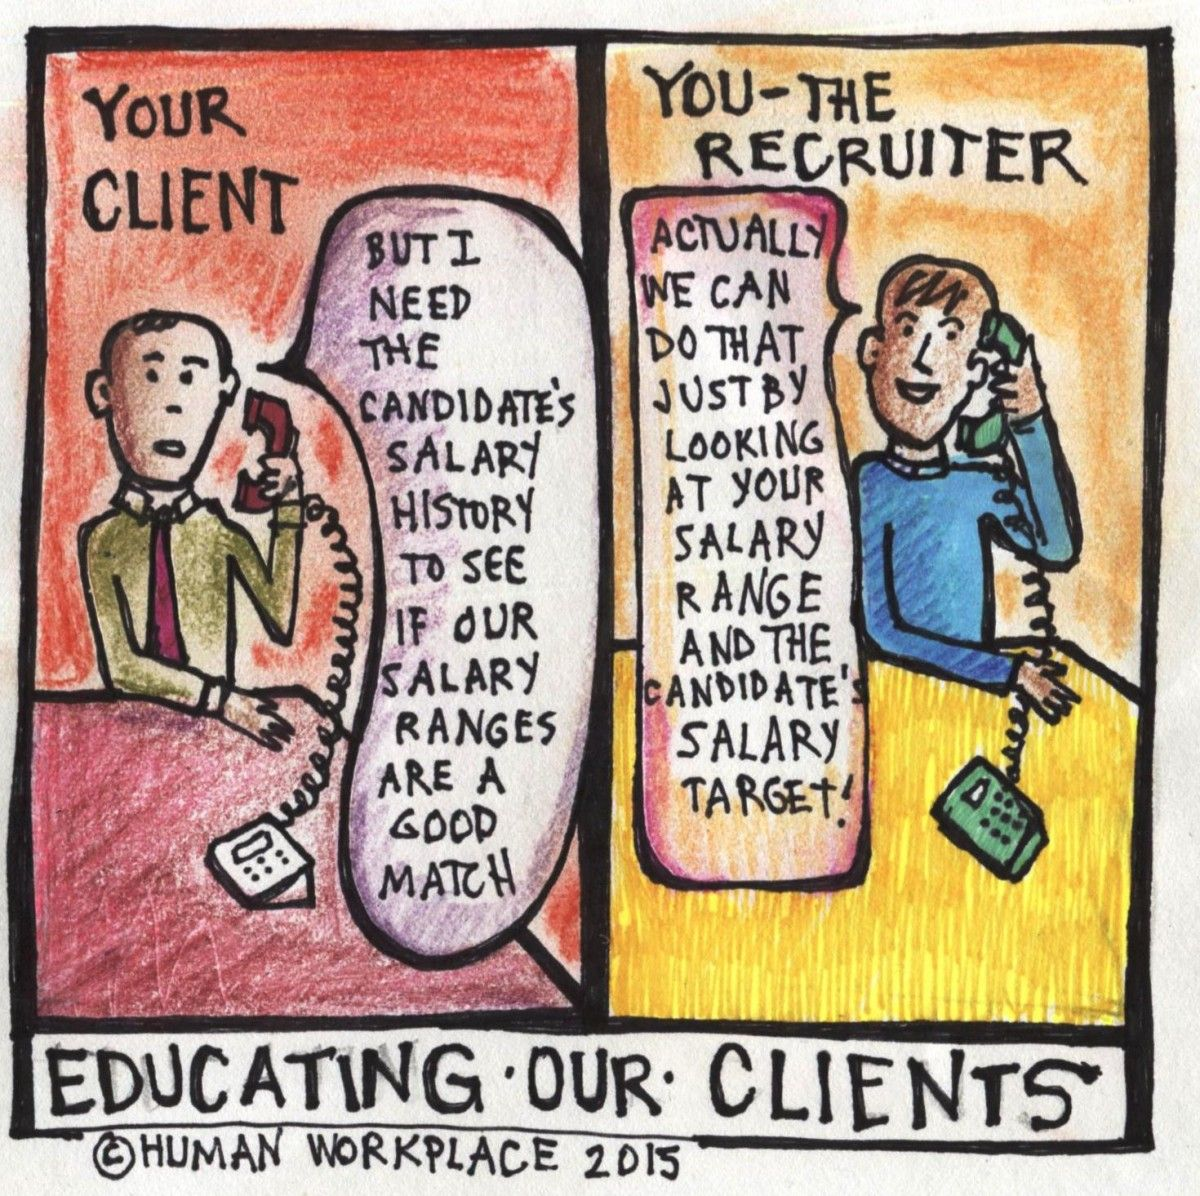 Three Lame Excuses Recruiters Give For Demanding Your Salary Details